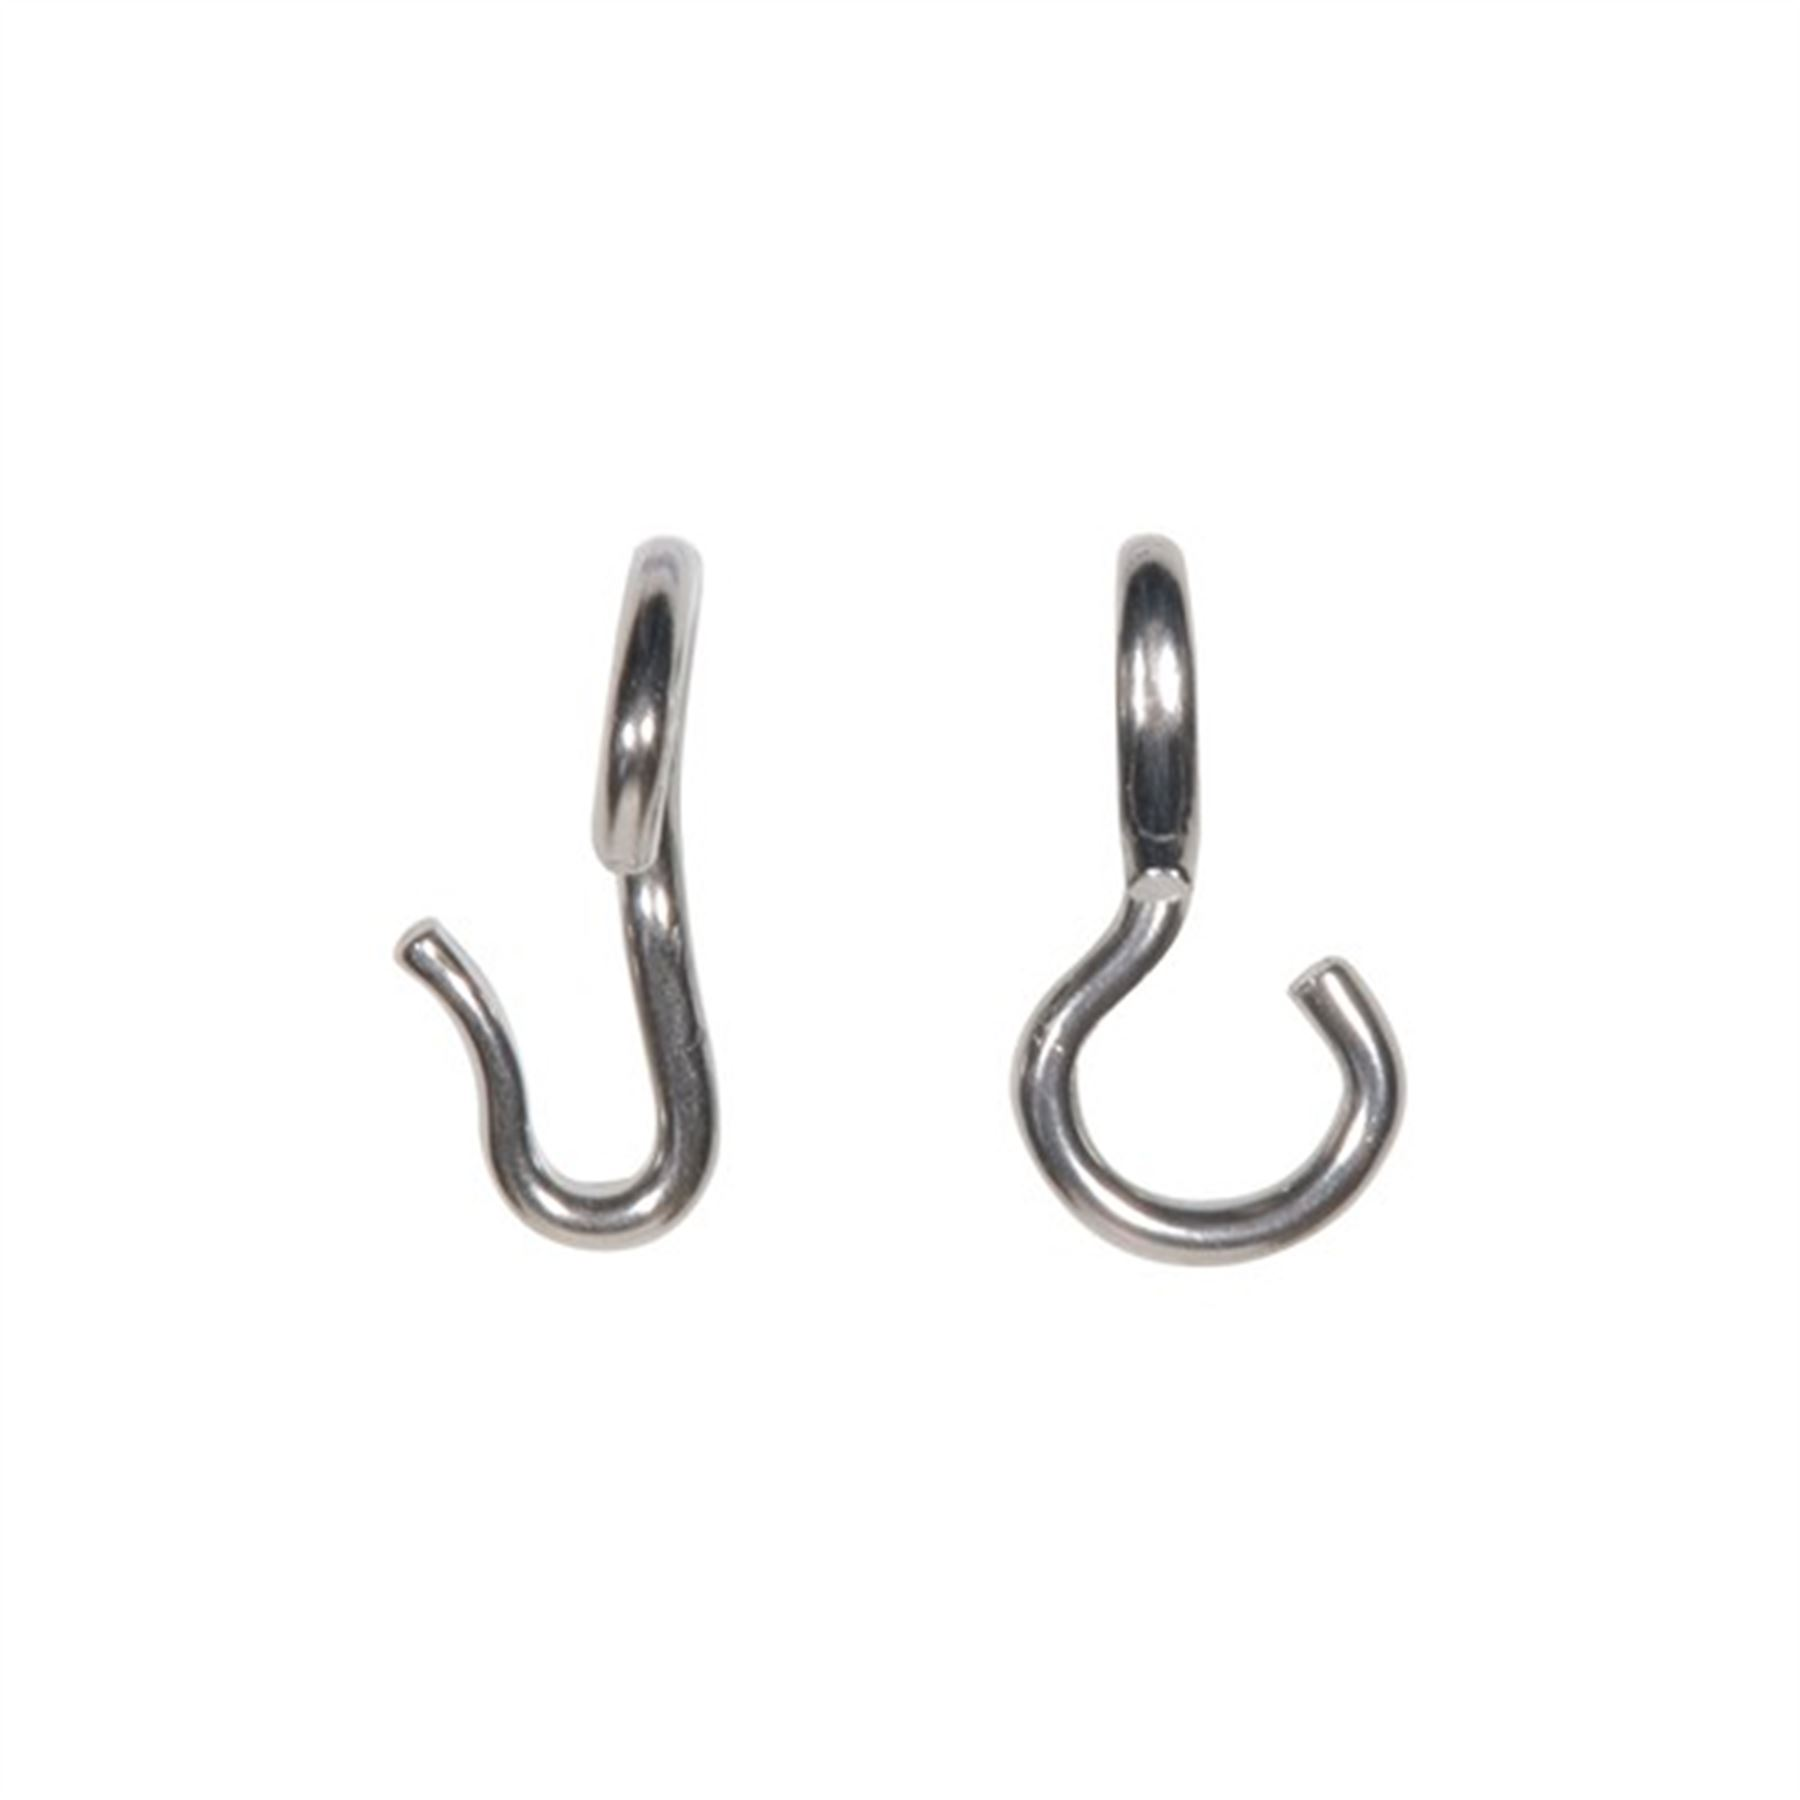 Stubby Never Rust Curb Hooks In Bit Accessories At